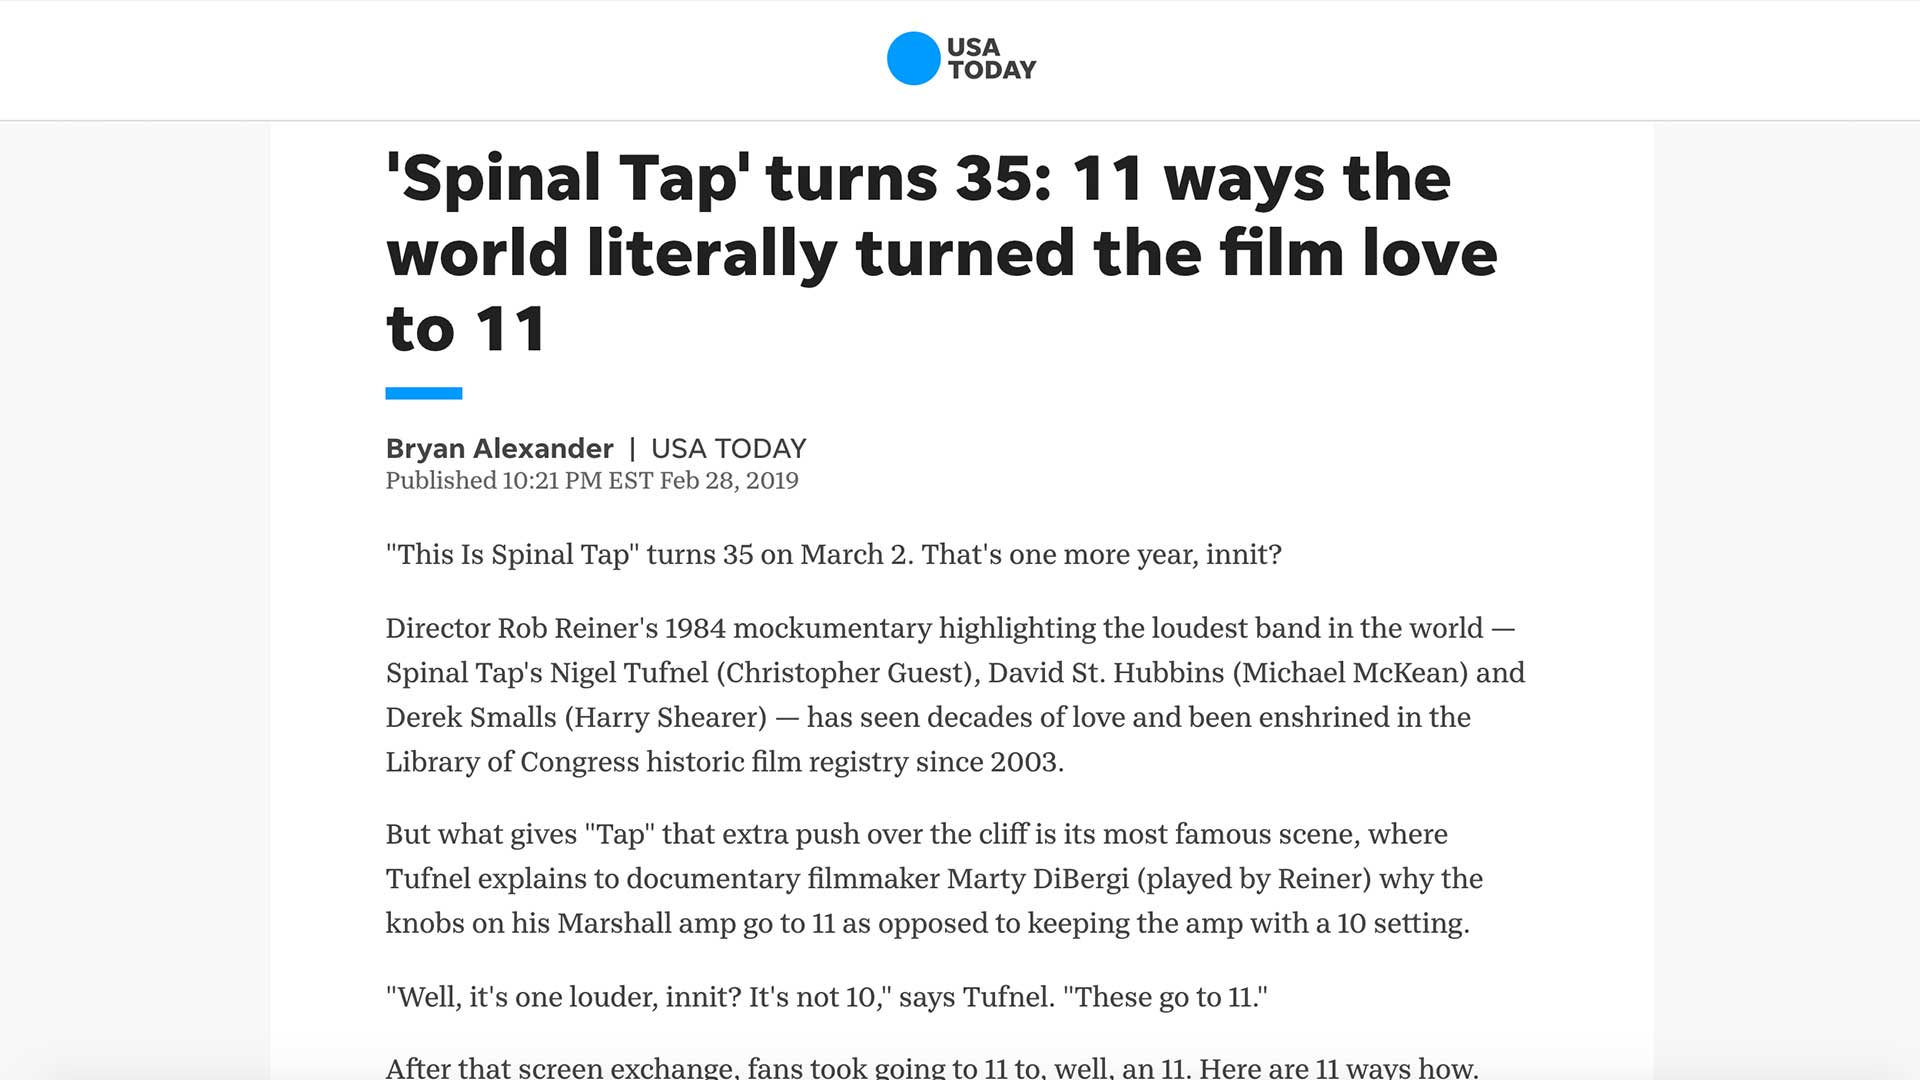 Fairness Rocks News 'Spinal Tap' turns 35: 11 ways the world literally turned the film love to 11